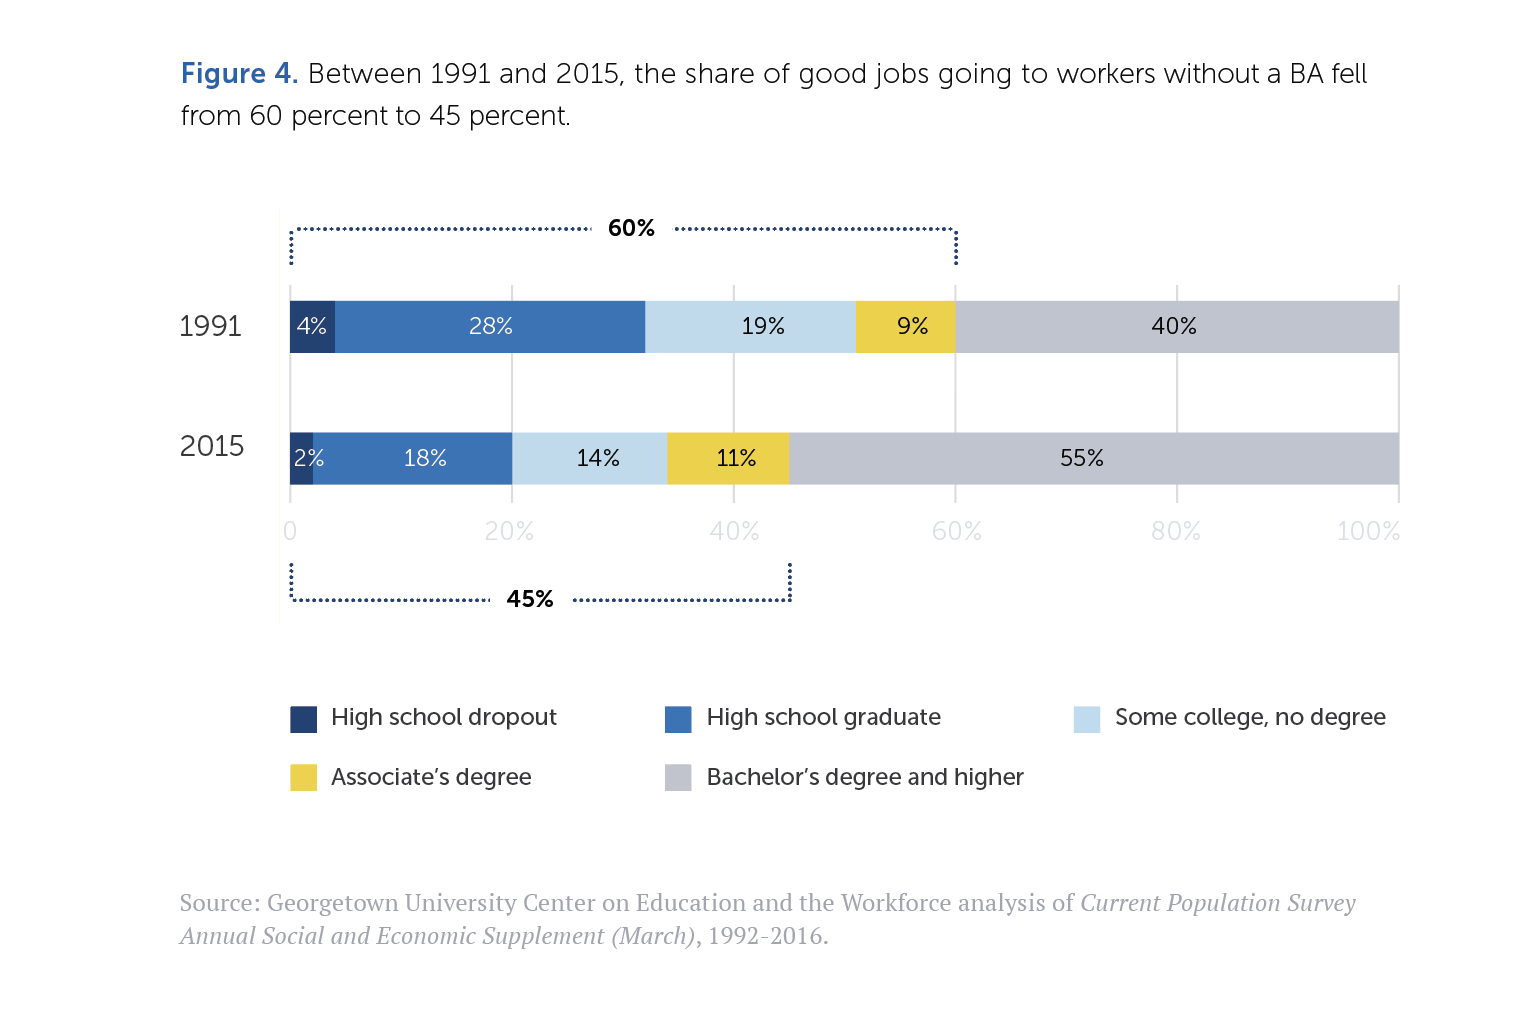 Figure 4: Between 1991 and 2015, the share of good jobs going to workers without a B.A. fell from 60 percent to 45 percent. Bar chart shows change in share of good jobs by level of education achieved.